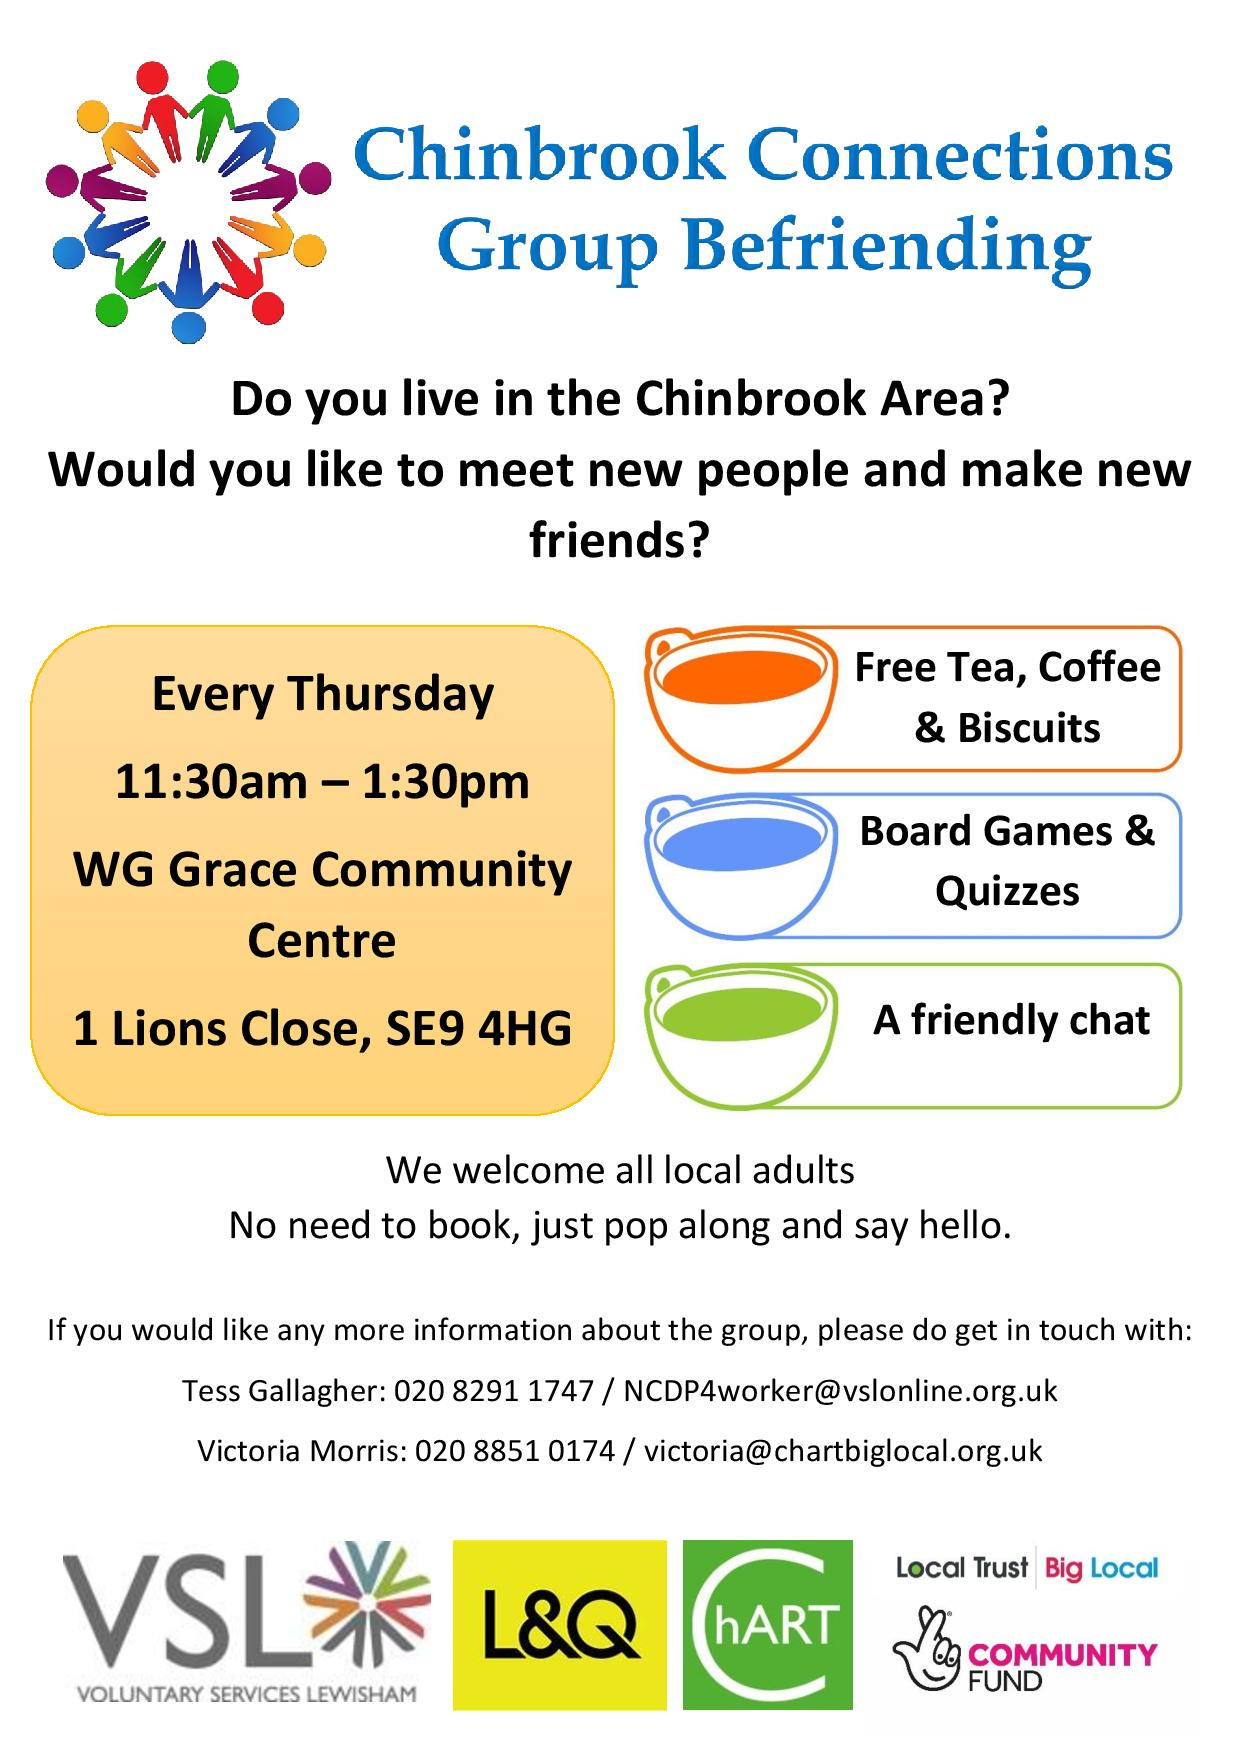 Flyer Advertising Chinbrook Connections group Every Thursday 11:30am - 1:30pm WG Grace Community Centre, 1 Lions Close, SE9 4HG. Graphic with tea cups advertising Free Tea, Coffee and Biscuits, Board Games & Quizzes, A Friendly Chat